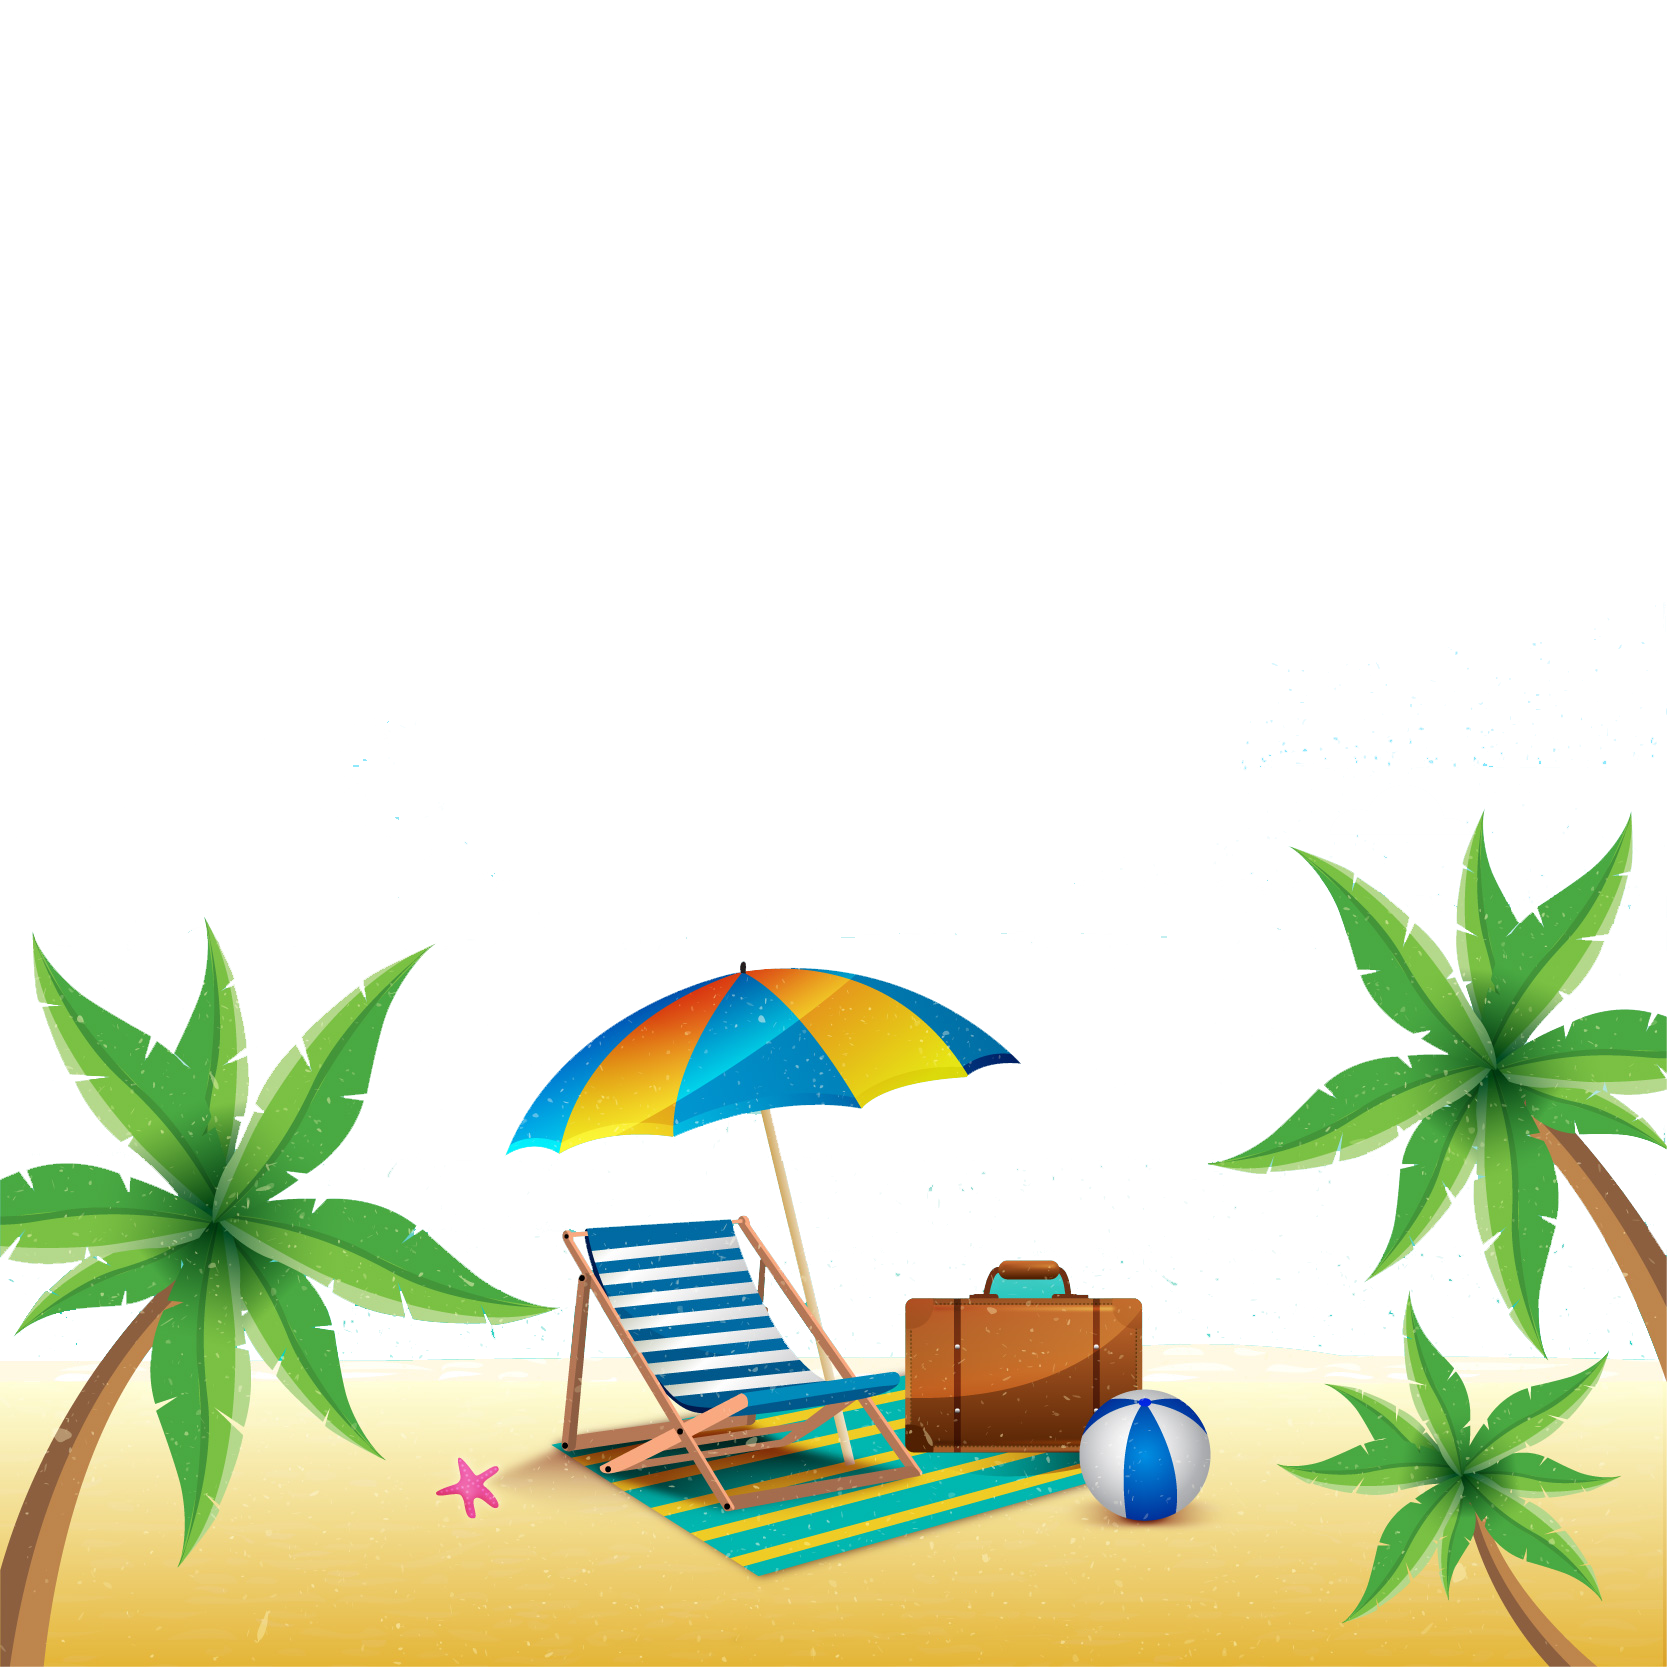 Summer png. Beach image vector clipart